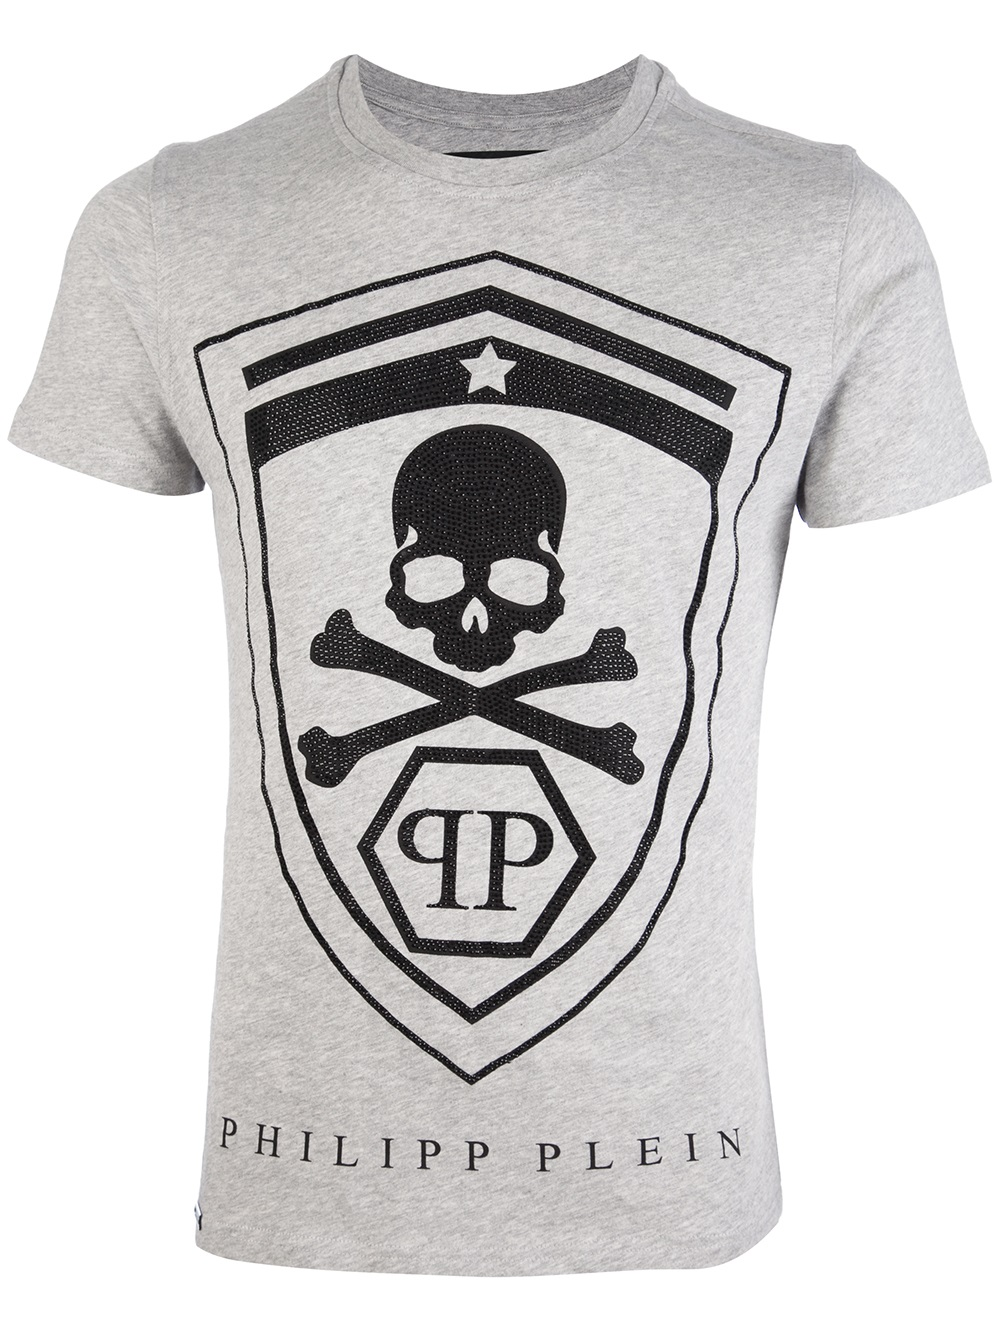 philipp plein skull print tshirt in gray for men lyst. Black Bedroom Furniture Sets. Home Design Ideas